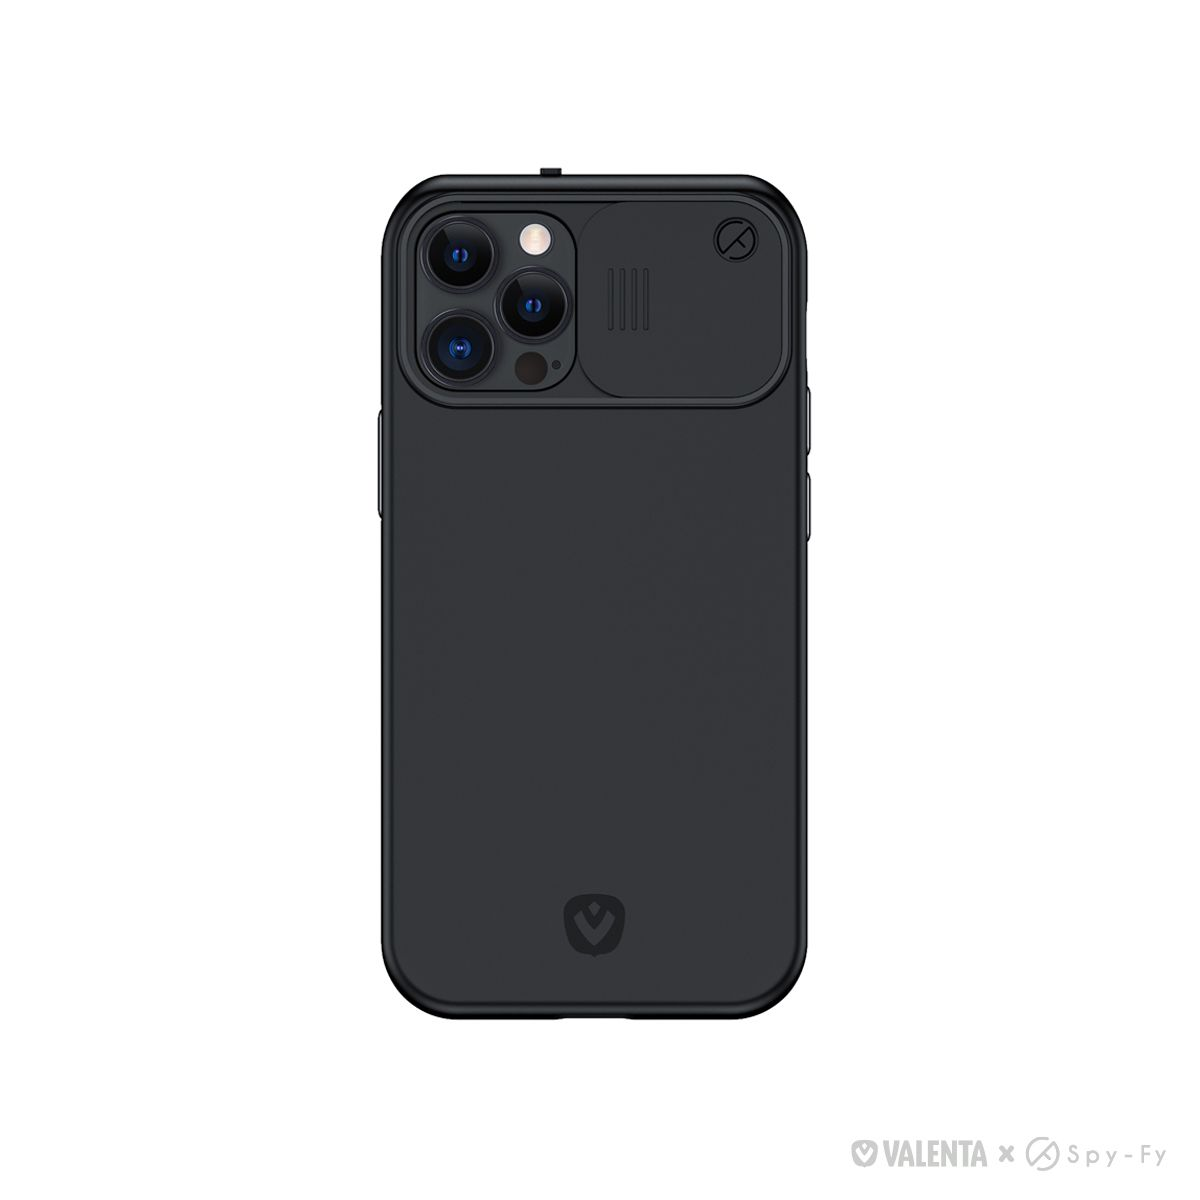 valenta x spyfy privacy cover black iphone iphone 12 pro max